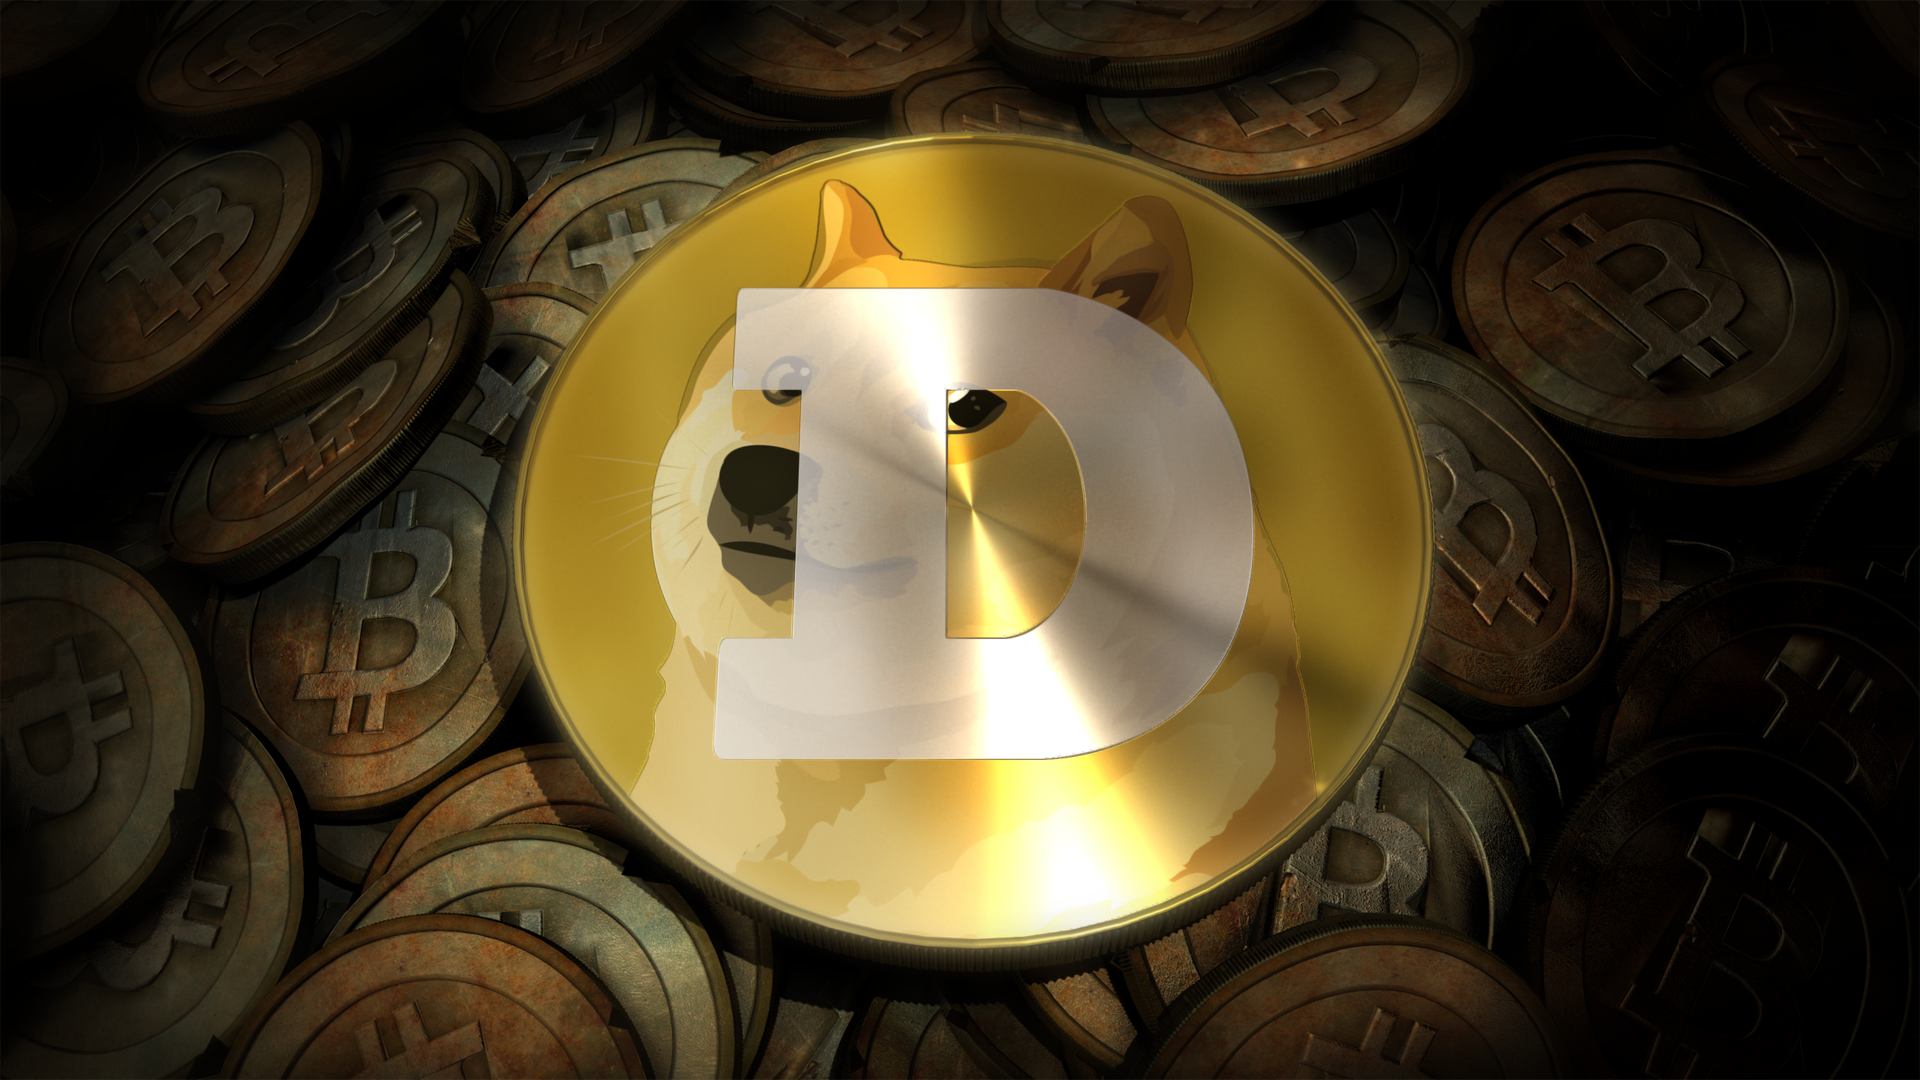 3D Dogecoin Background   Doge Wallpaper 1920x1080 29089 1920x1080